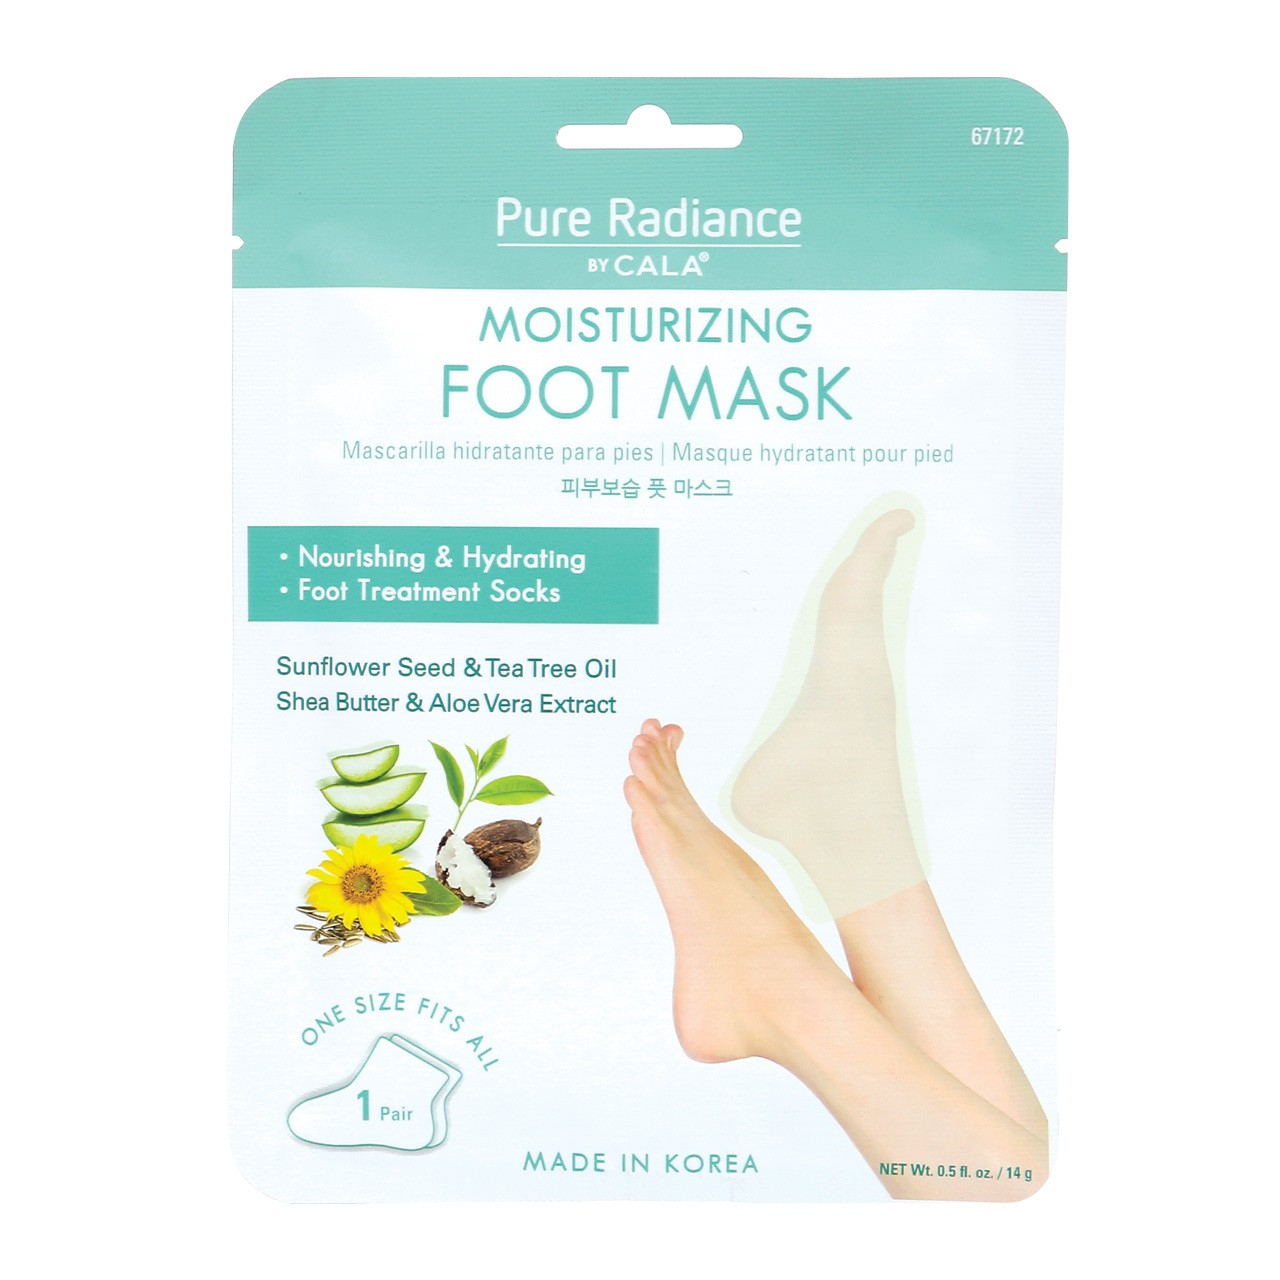 Moisturizing Foot Mask (3 Pairs)